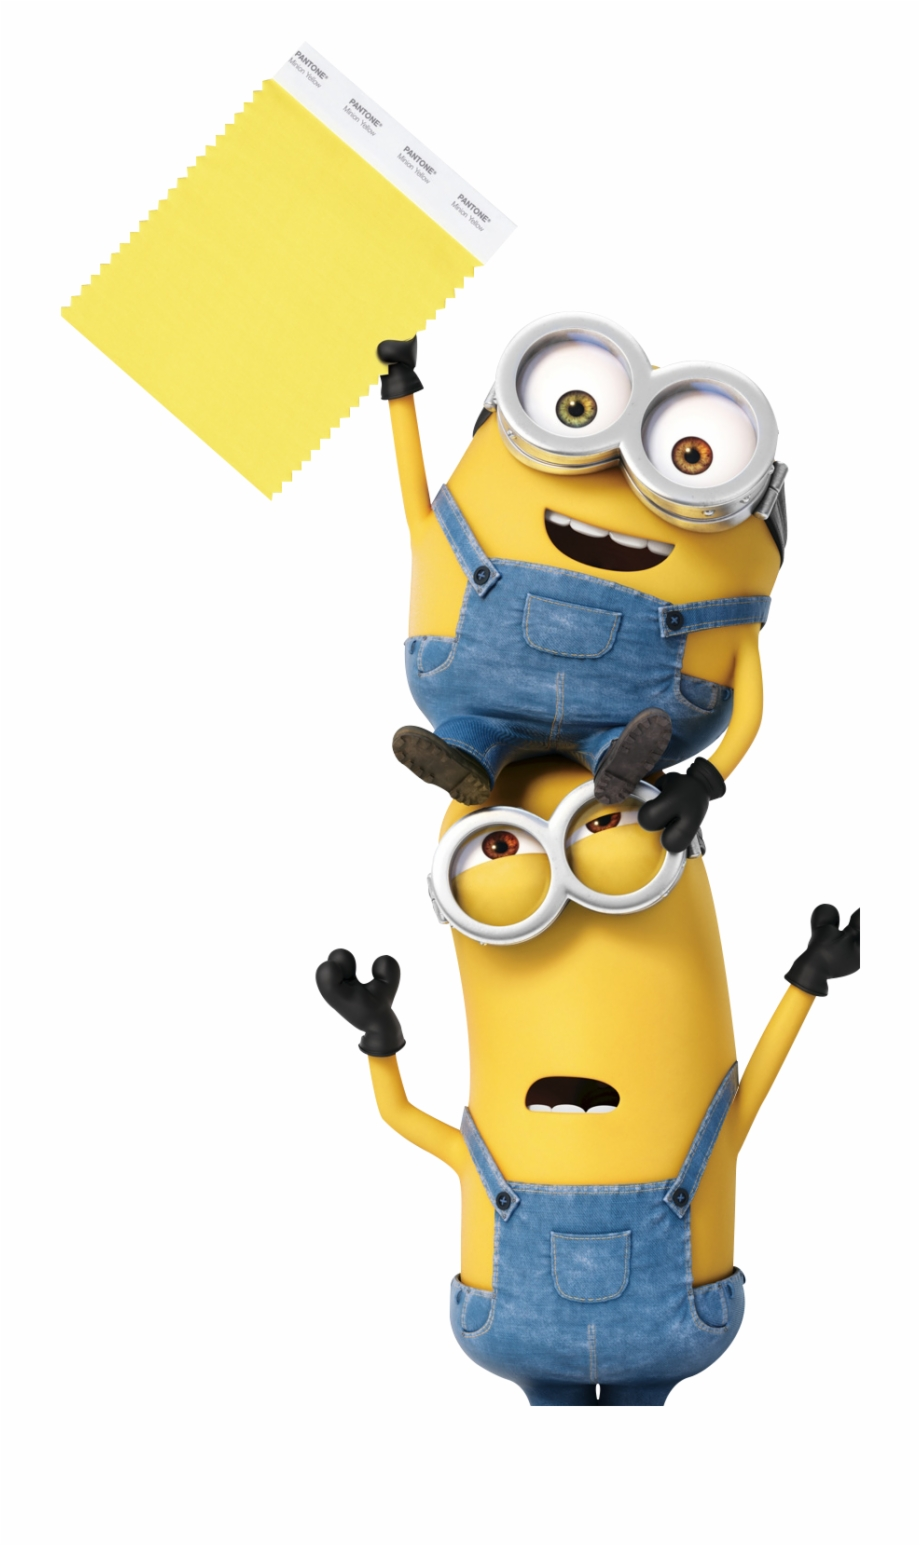 Minions Png   Transparent Background Minions Png   minion logo png 920x1546